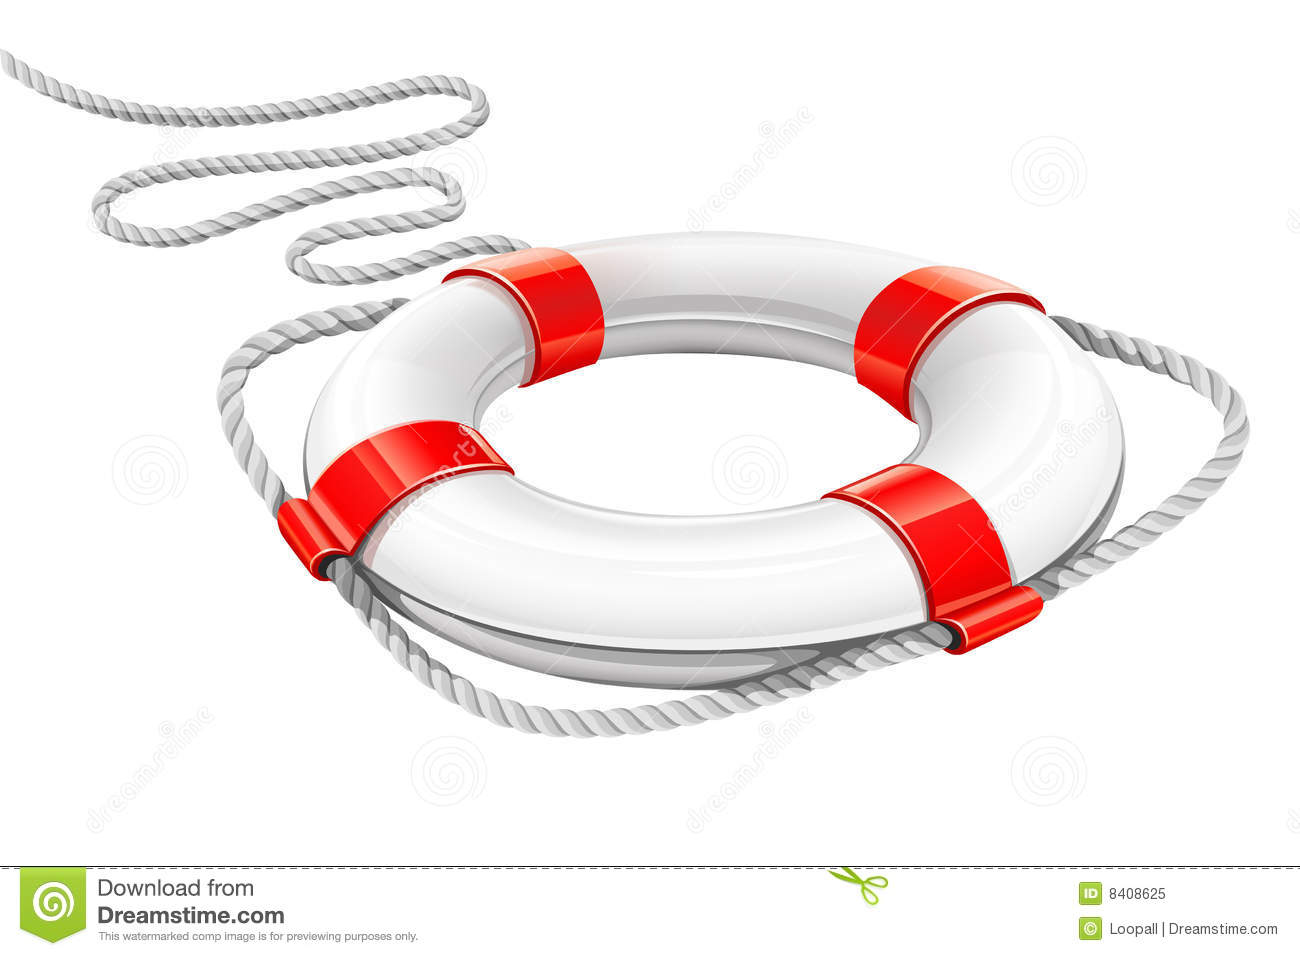 Water rescue clipart.